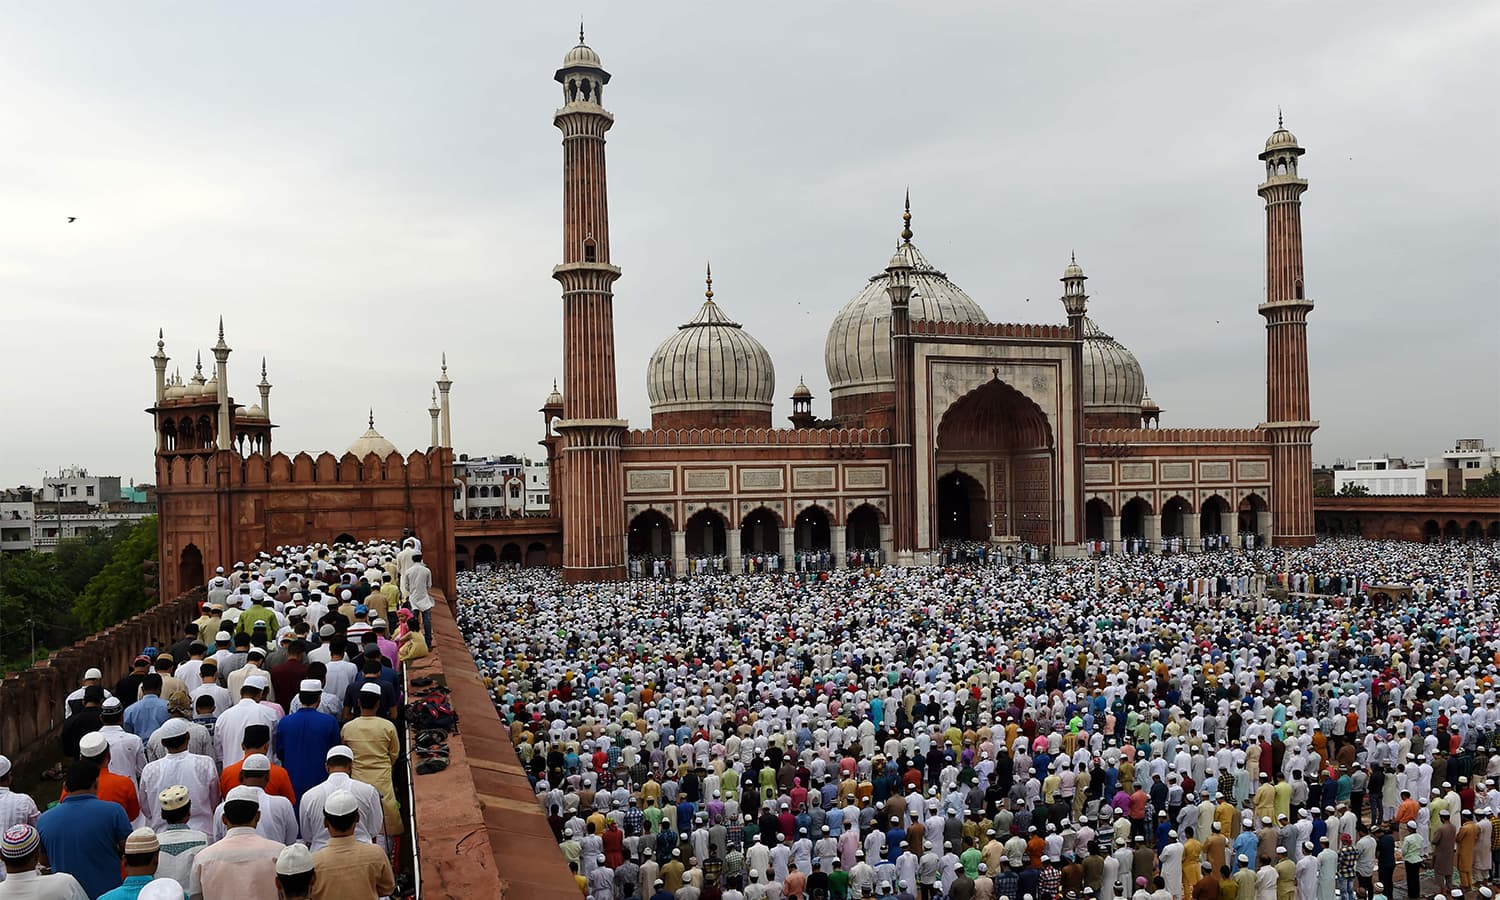 Worshippers offer prayers on the first day of Eidul Azha at Jamia Masjid in New Delhi, India.—AFP